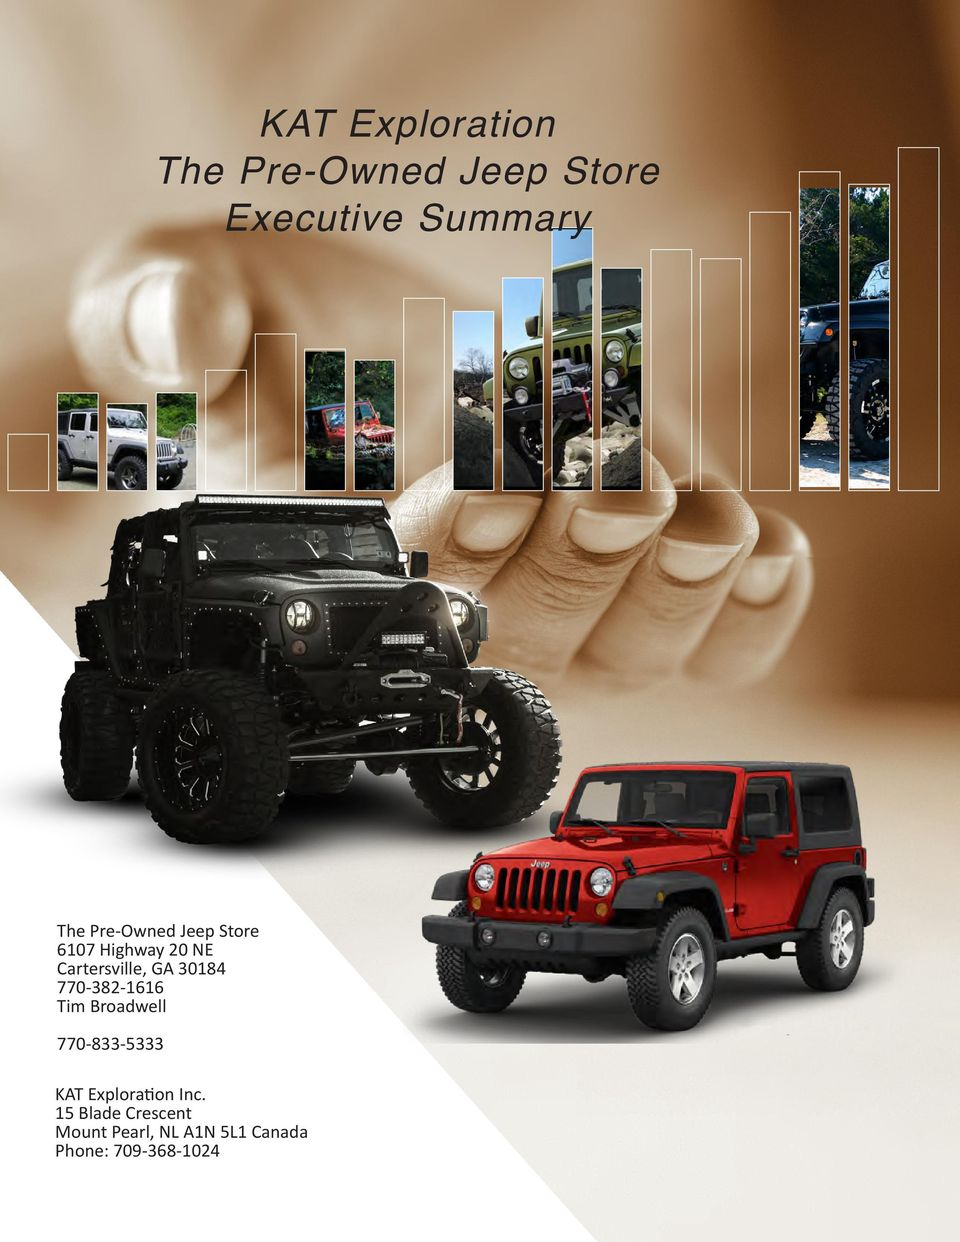 770 382 1616 Tim Broadwell 770 833 5333 KAT Exploration Inc. 2 Roswell Jeep  Eagle. D.b.a. 1 The Pre Owned Store ...